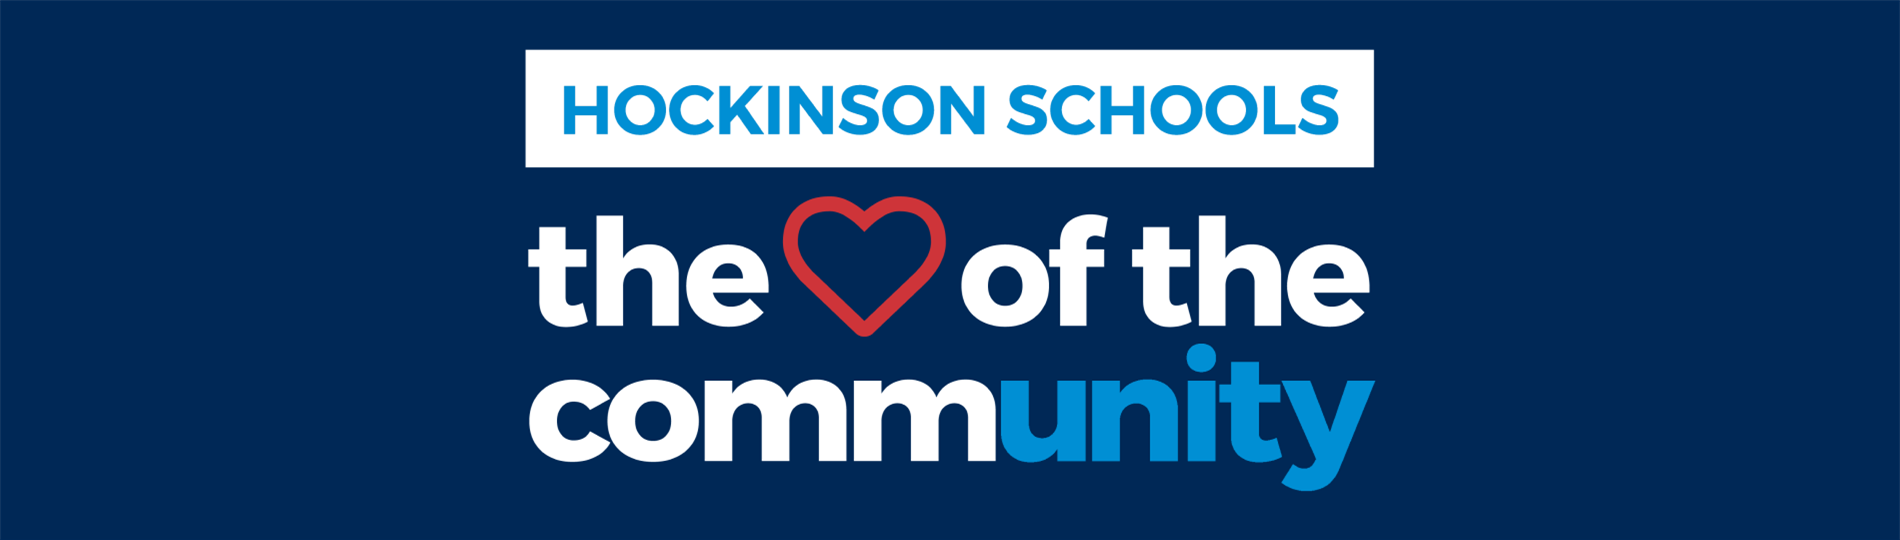 Hockinson Schools are the Heart of the Community